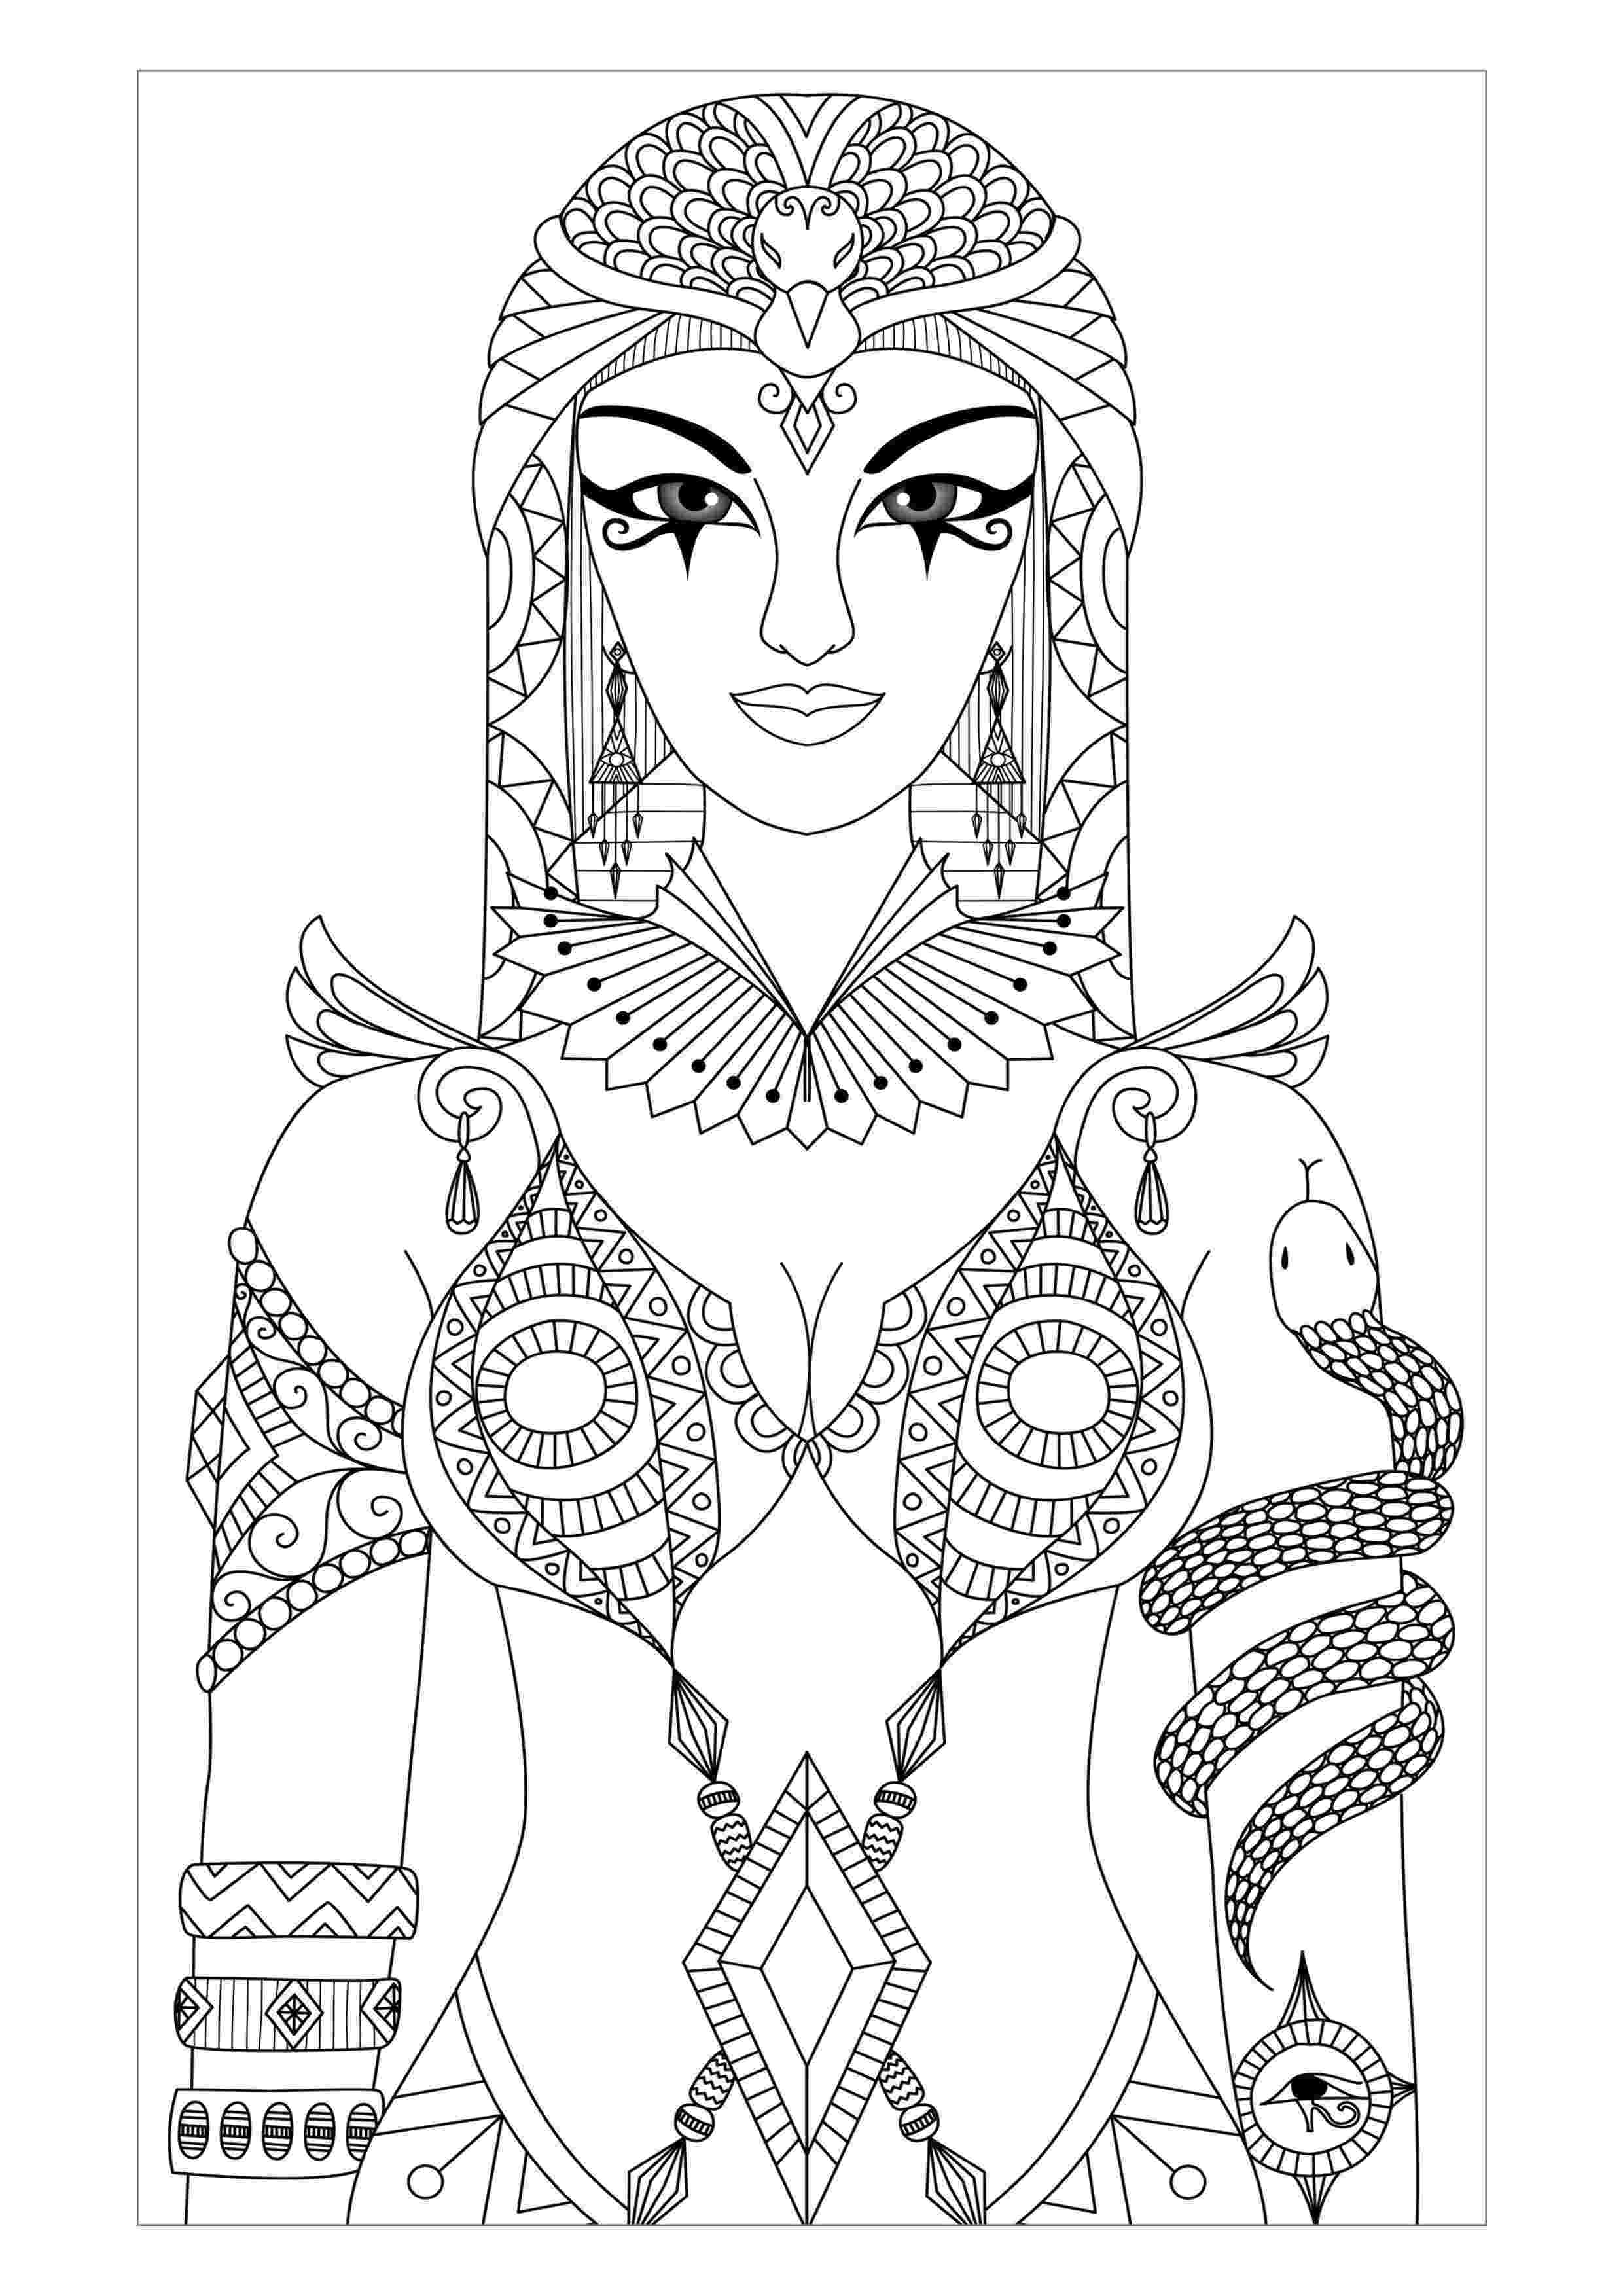 egyptian coloring pages egypt coloring pages coloring pages to download and print egyptian pages coloring